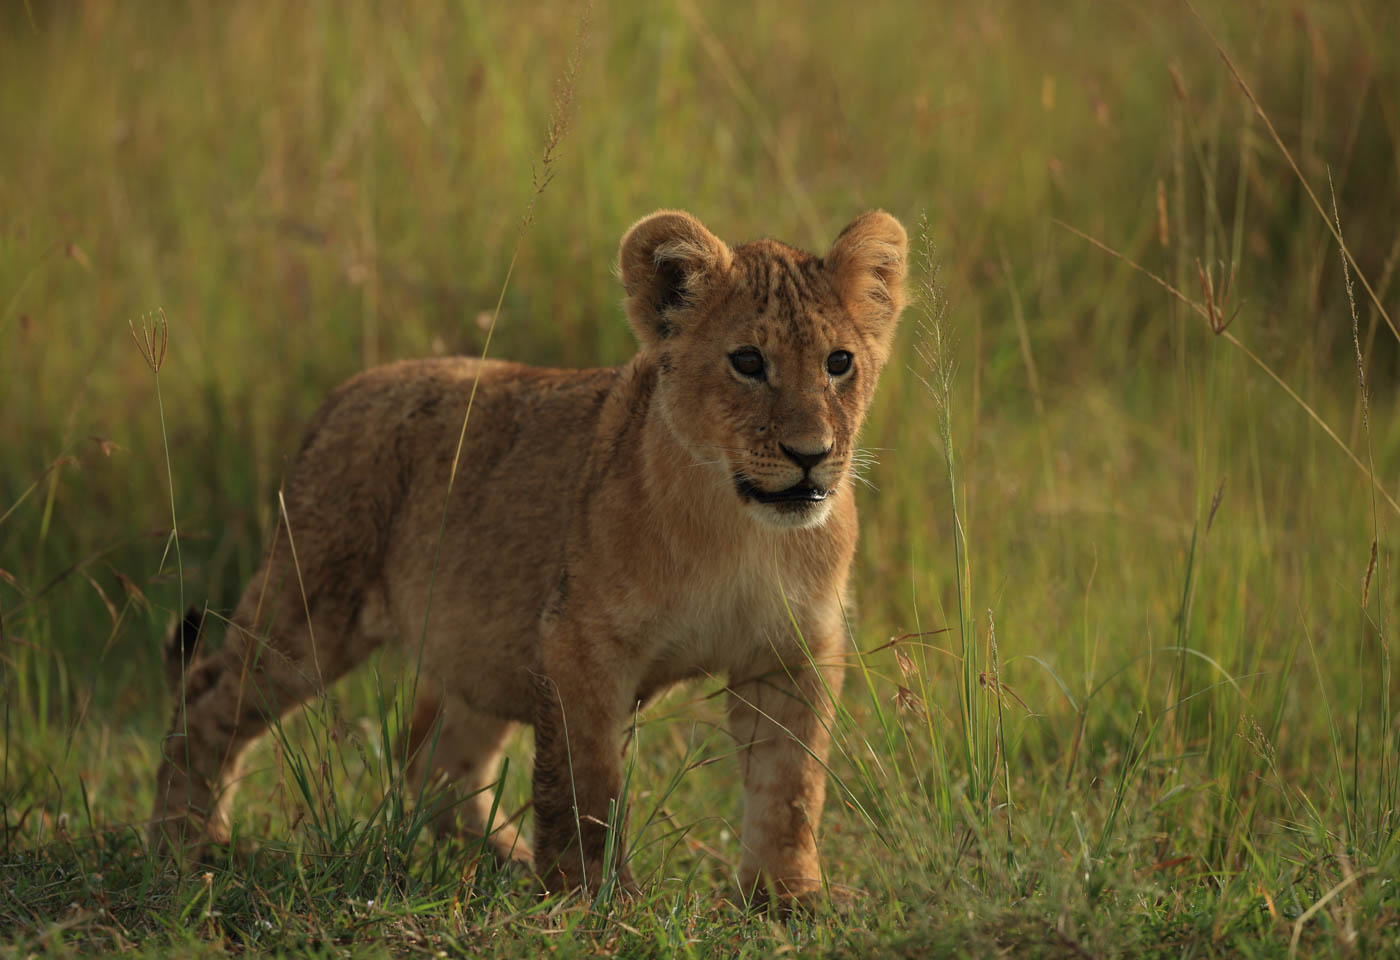 Lion cub taken with Canon EF Extender 2.0x III lens